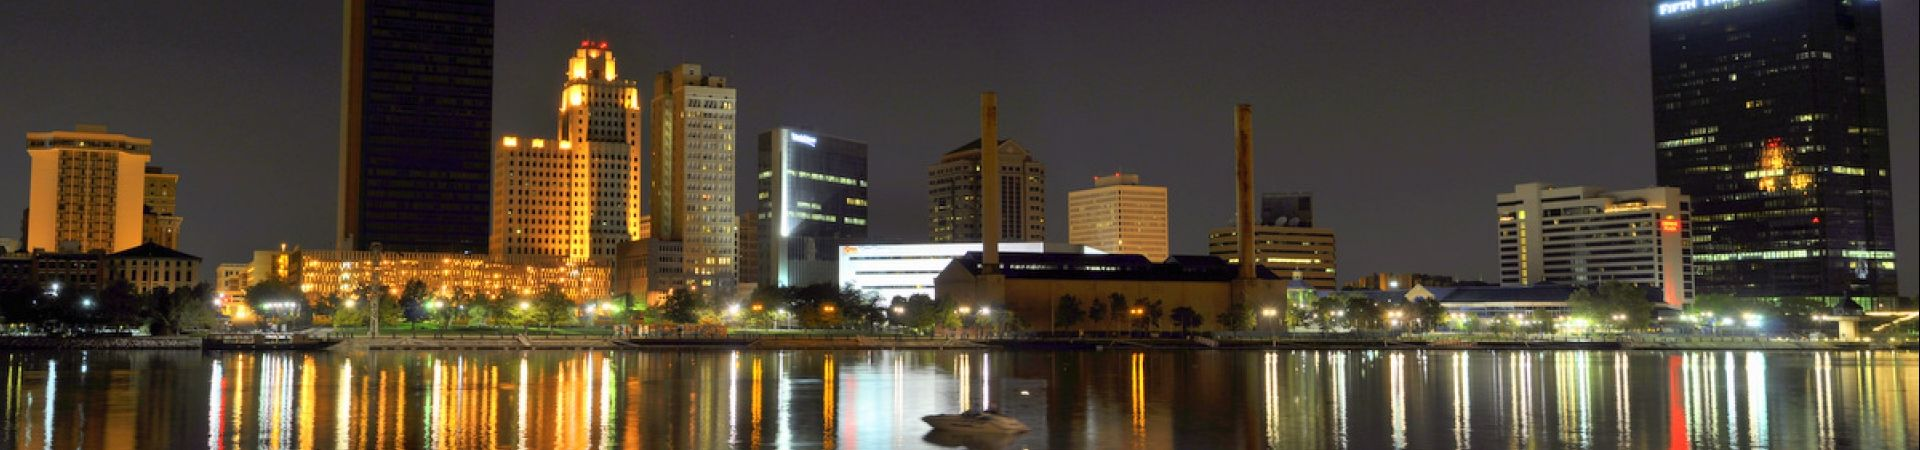 Toledo ohio skyline at night